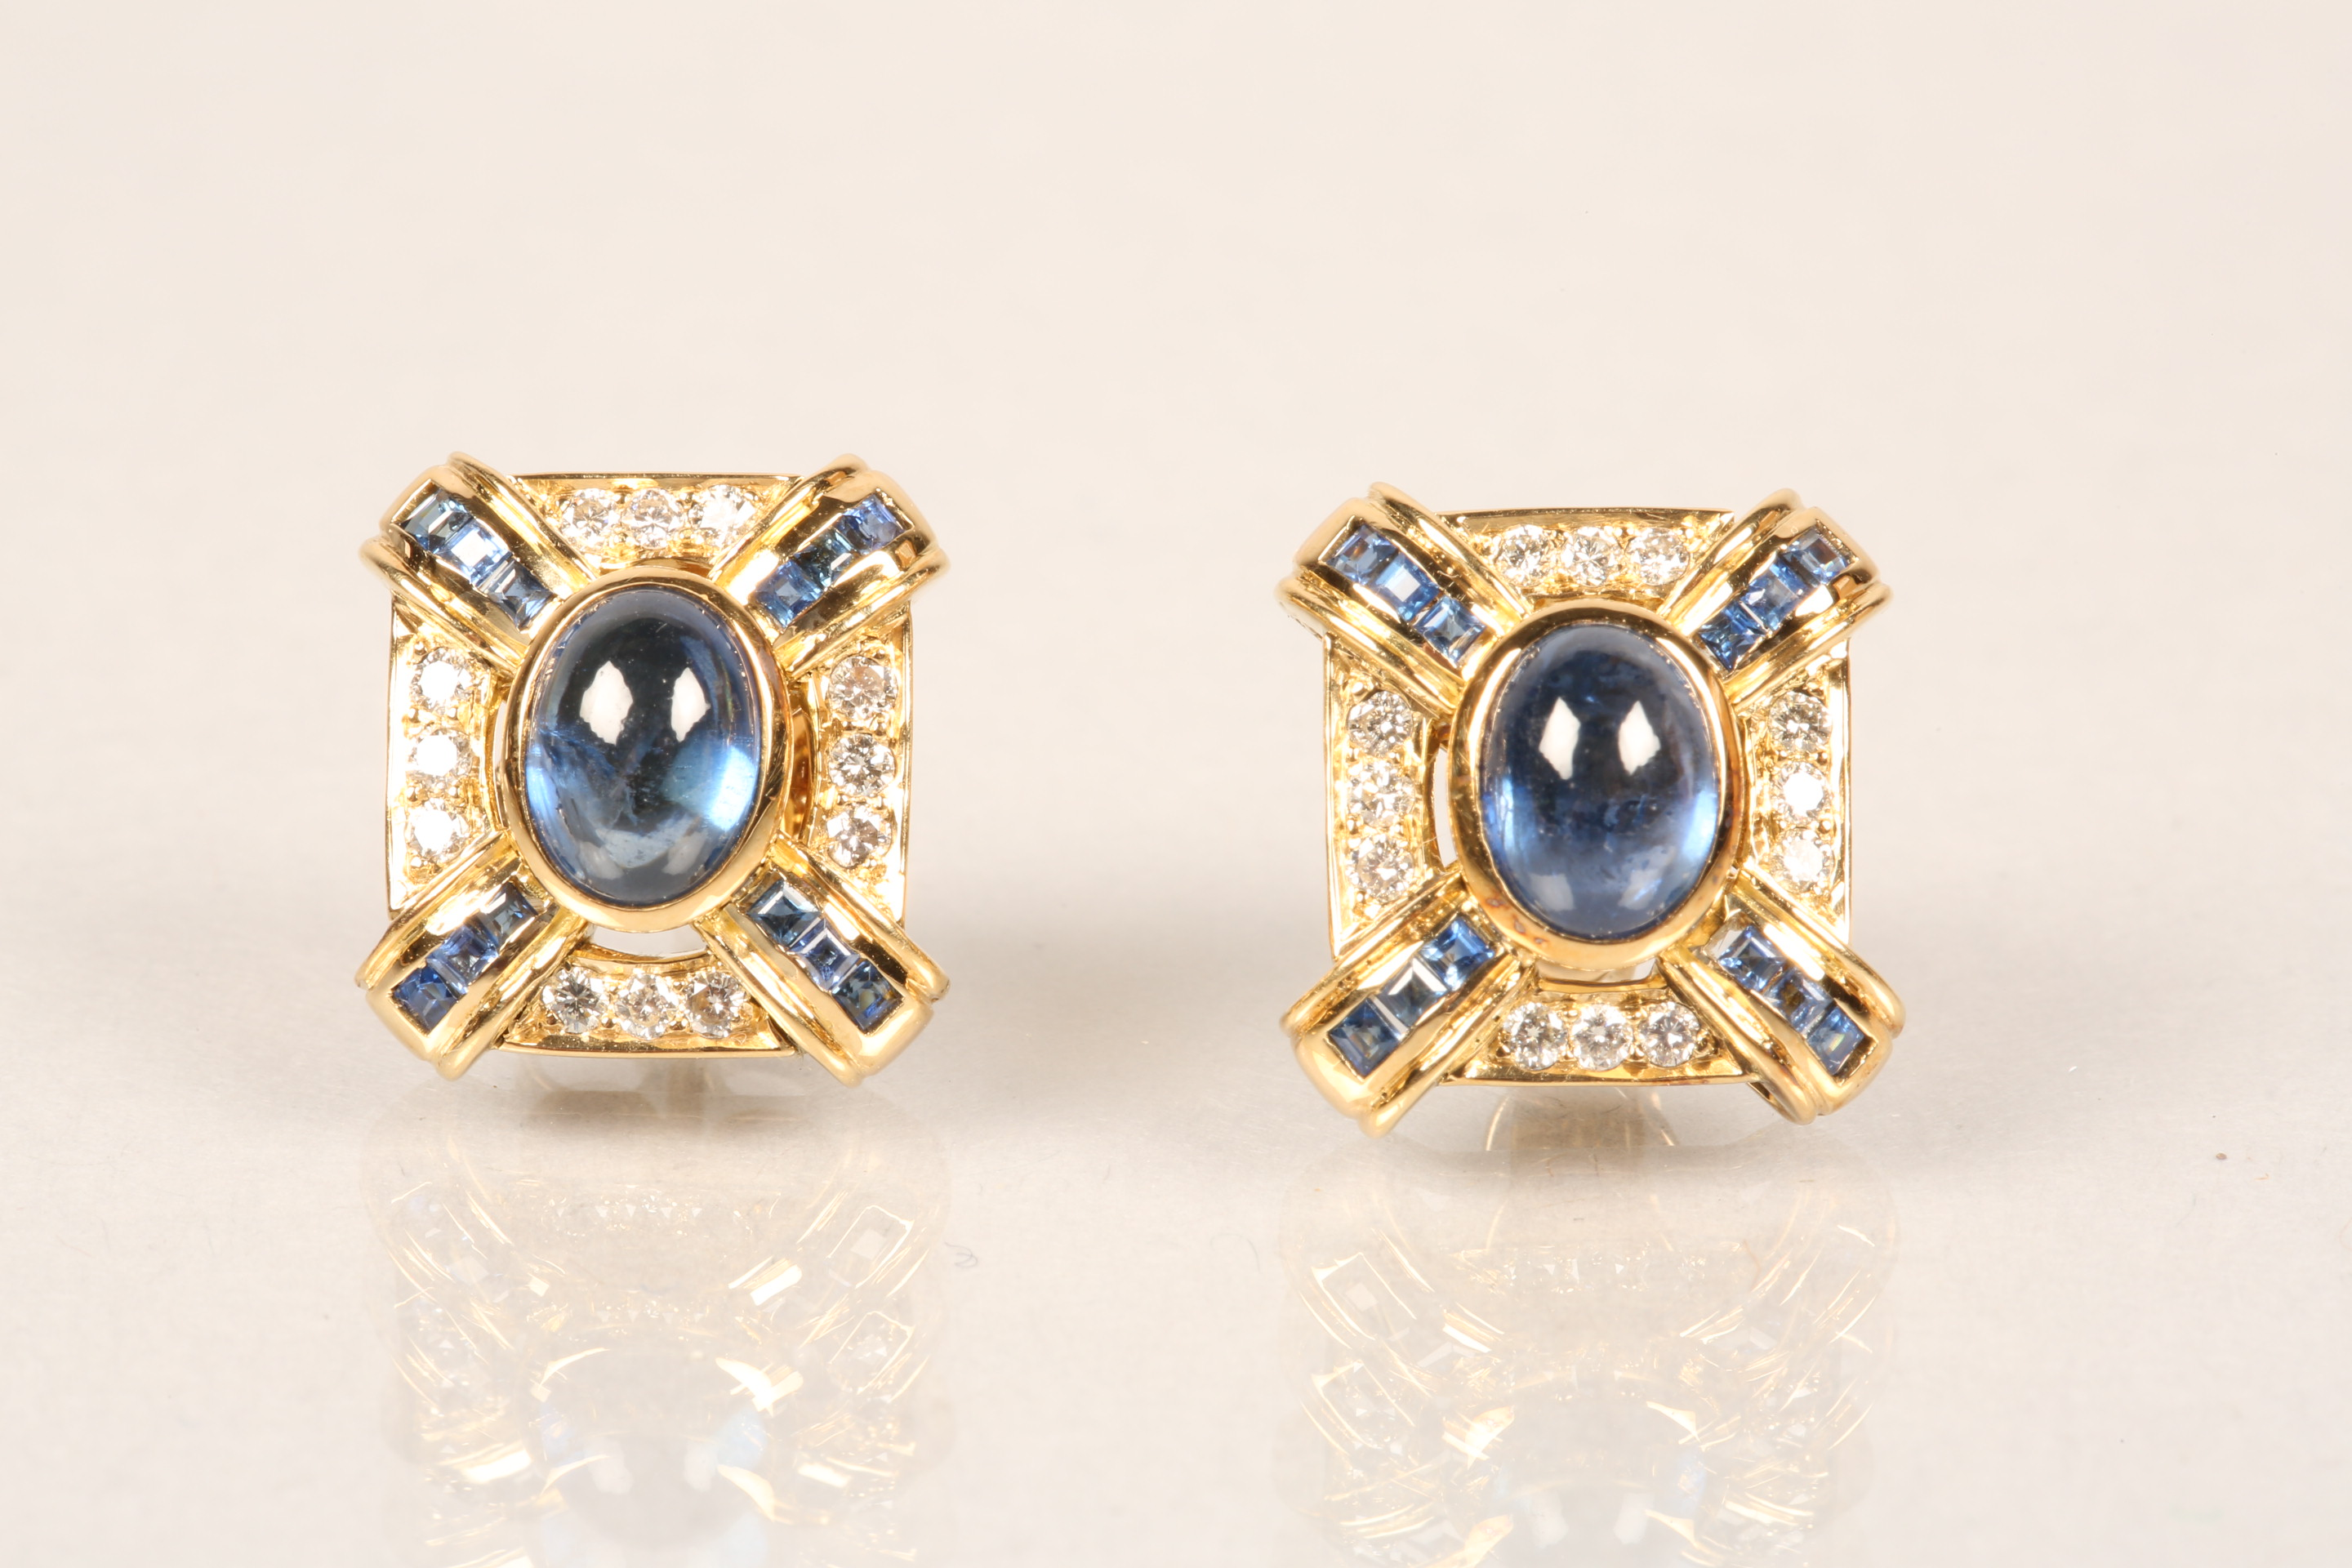 Boxed pair of 18 carat gold earrings, each set with a central blue sapphire cabochon surrounded by - Image 3 of 6